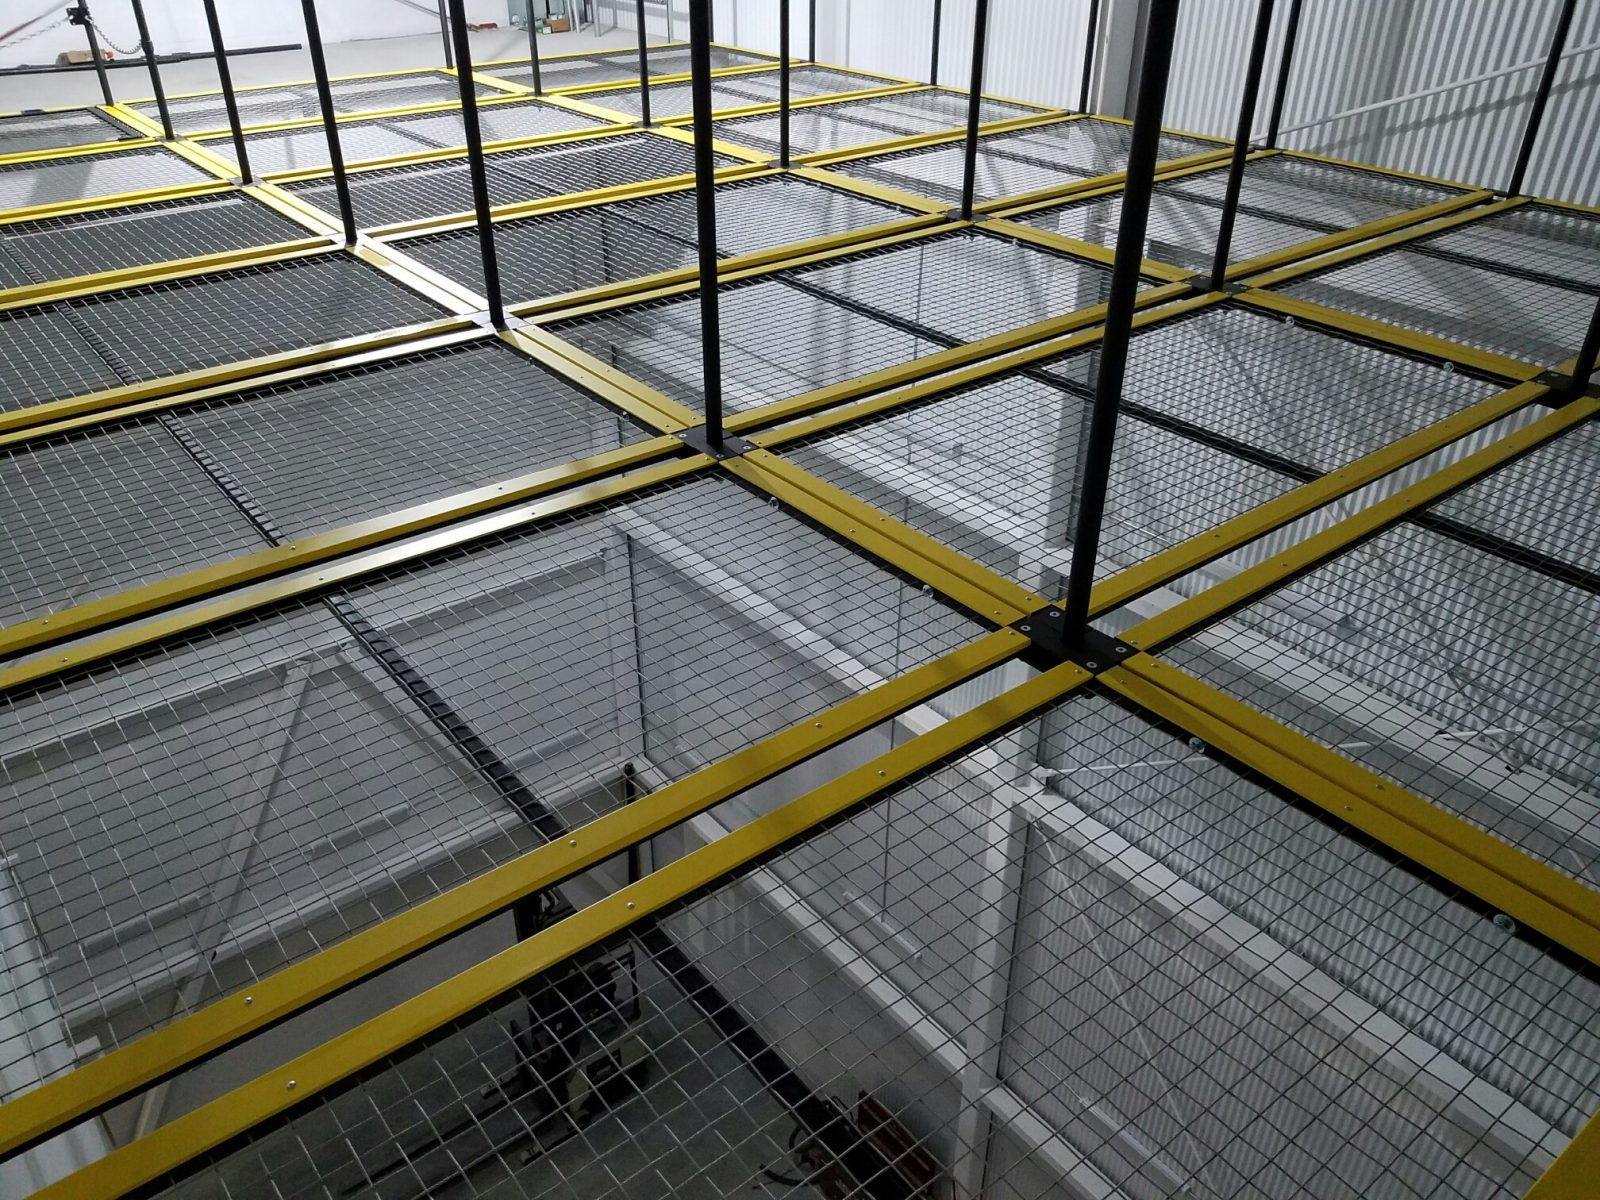 SkyDeck tension wire grid with Grid Wells and EdgePro at American Dance Institute in Castkill, NY.